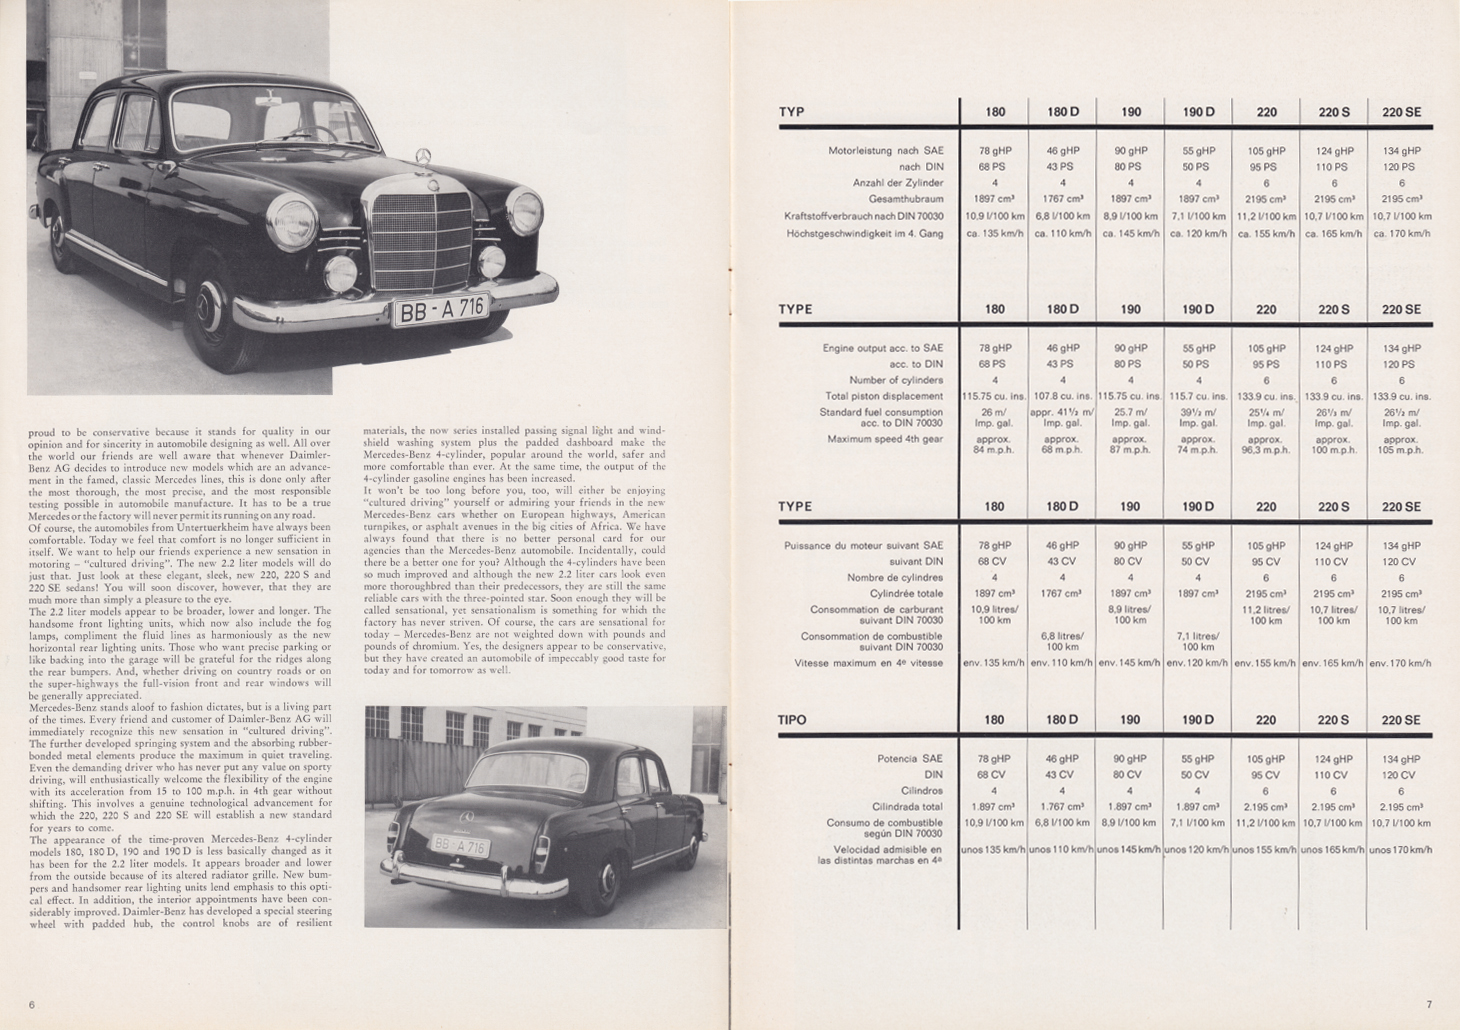 (REVISTA): Periódico In aller welt n.º 34 - Mercedes-Benz no mundo - 1959 - multilingue 004